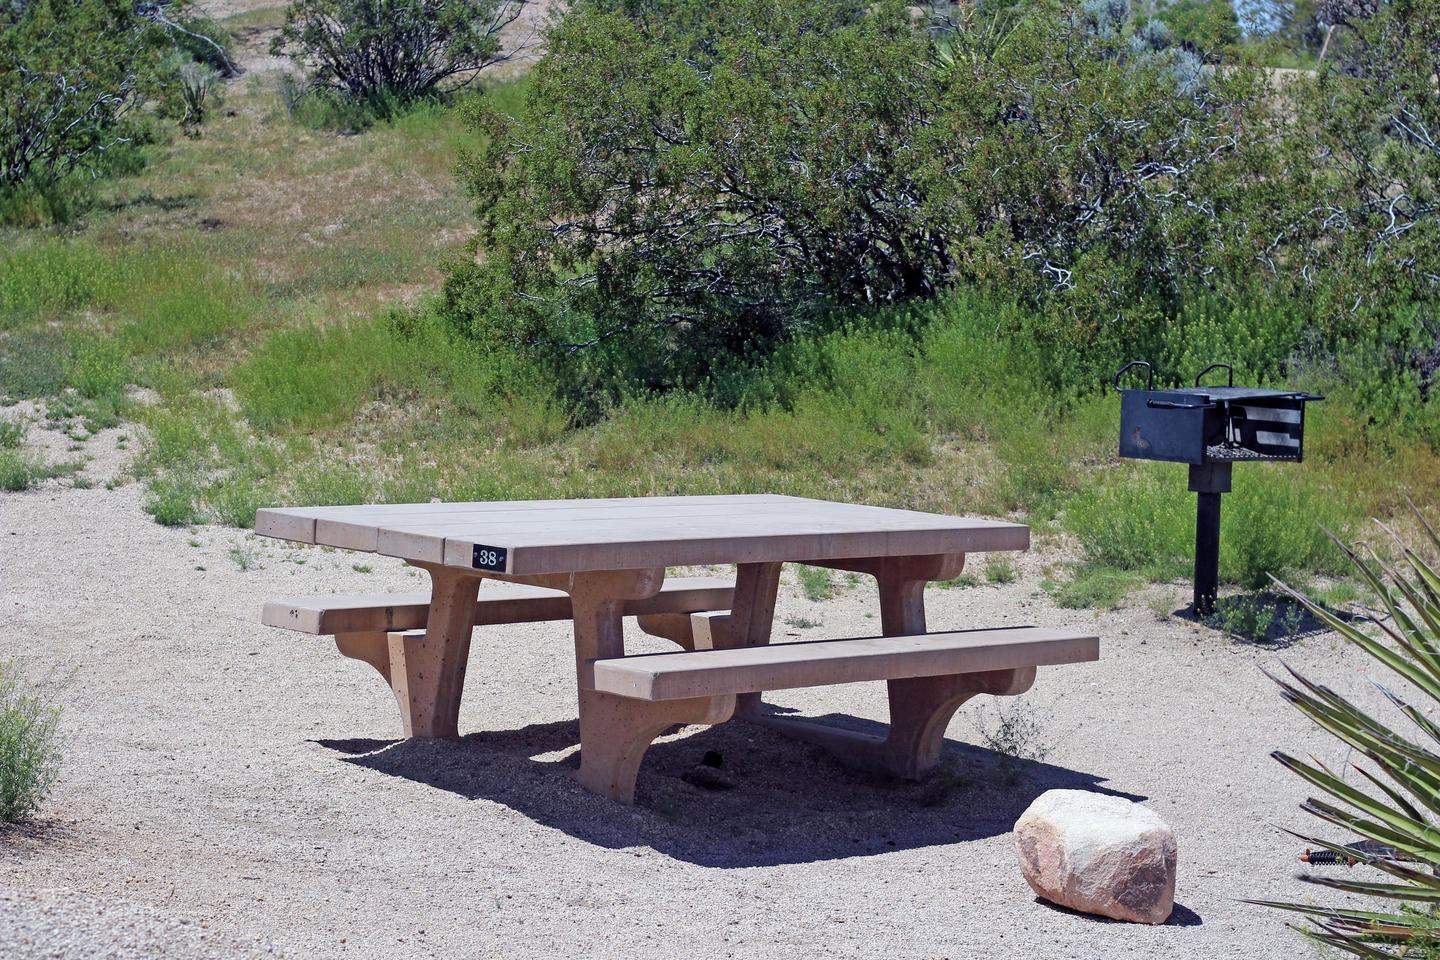 Picnic table surrounded by boulders and green plants.Campsite.